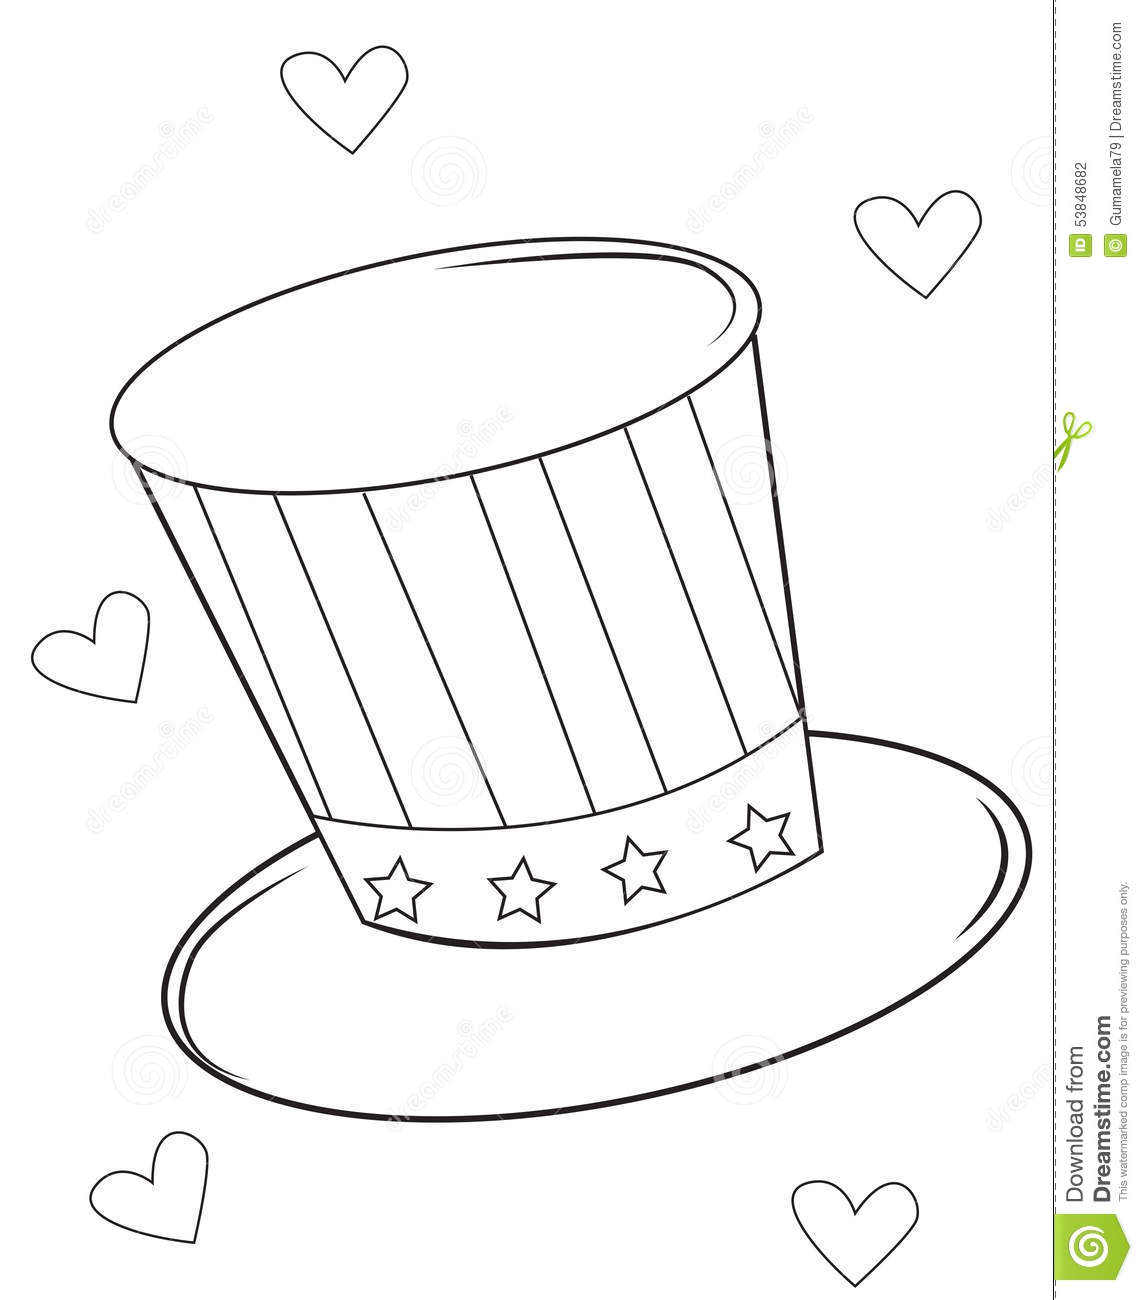 magic hat coloring page stock illustration